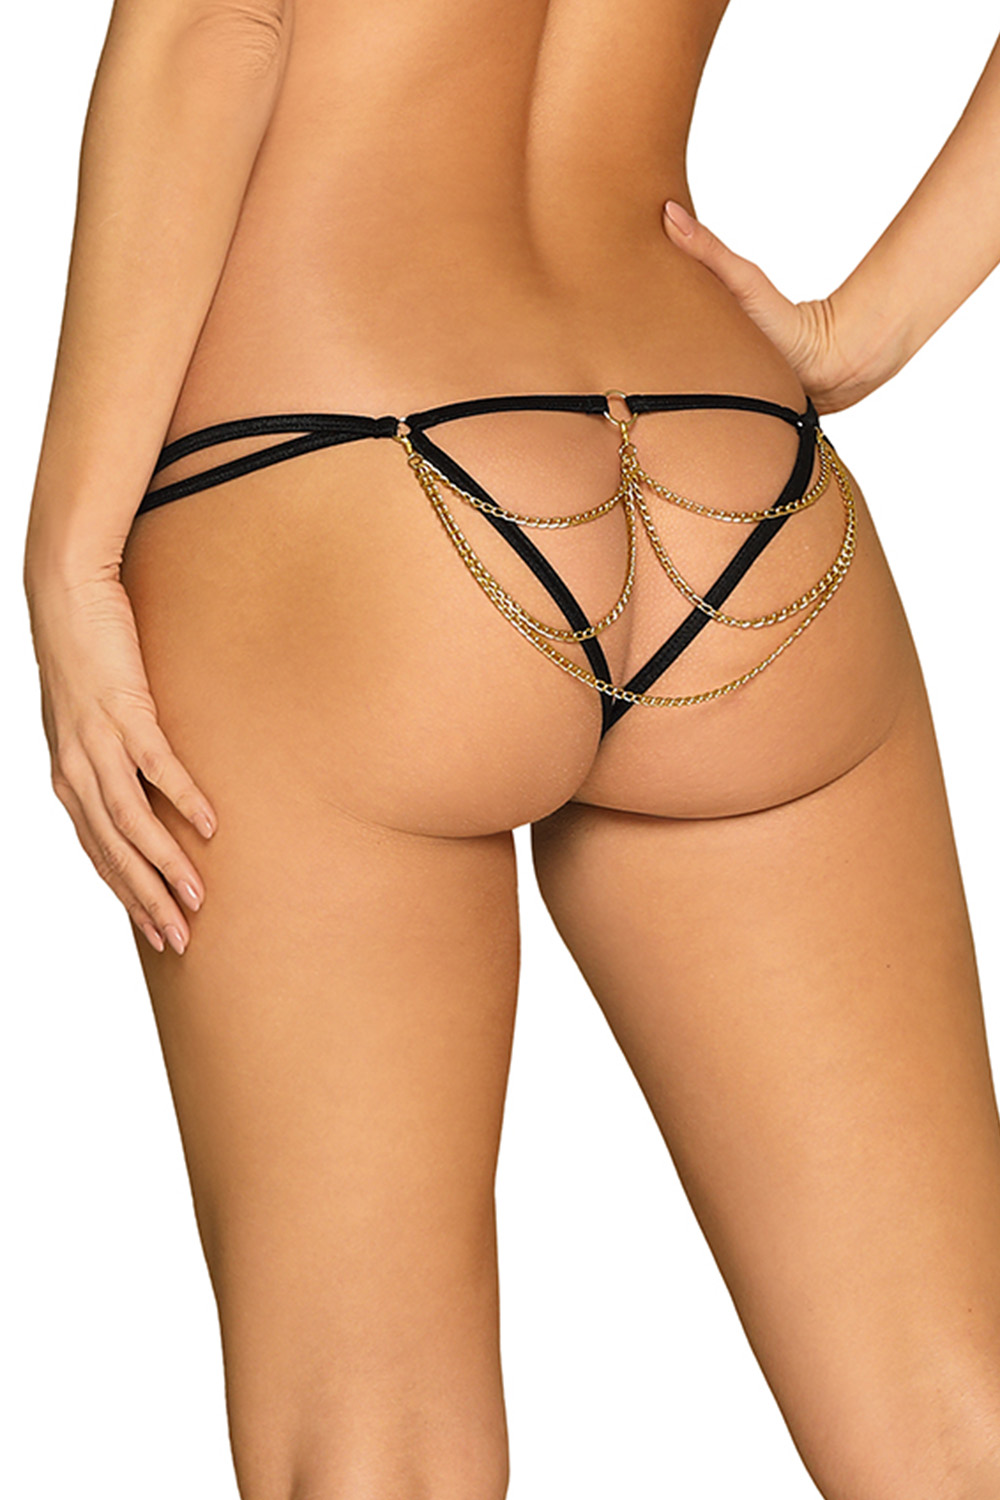 Obsessive Pantheria thong - czarny